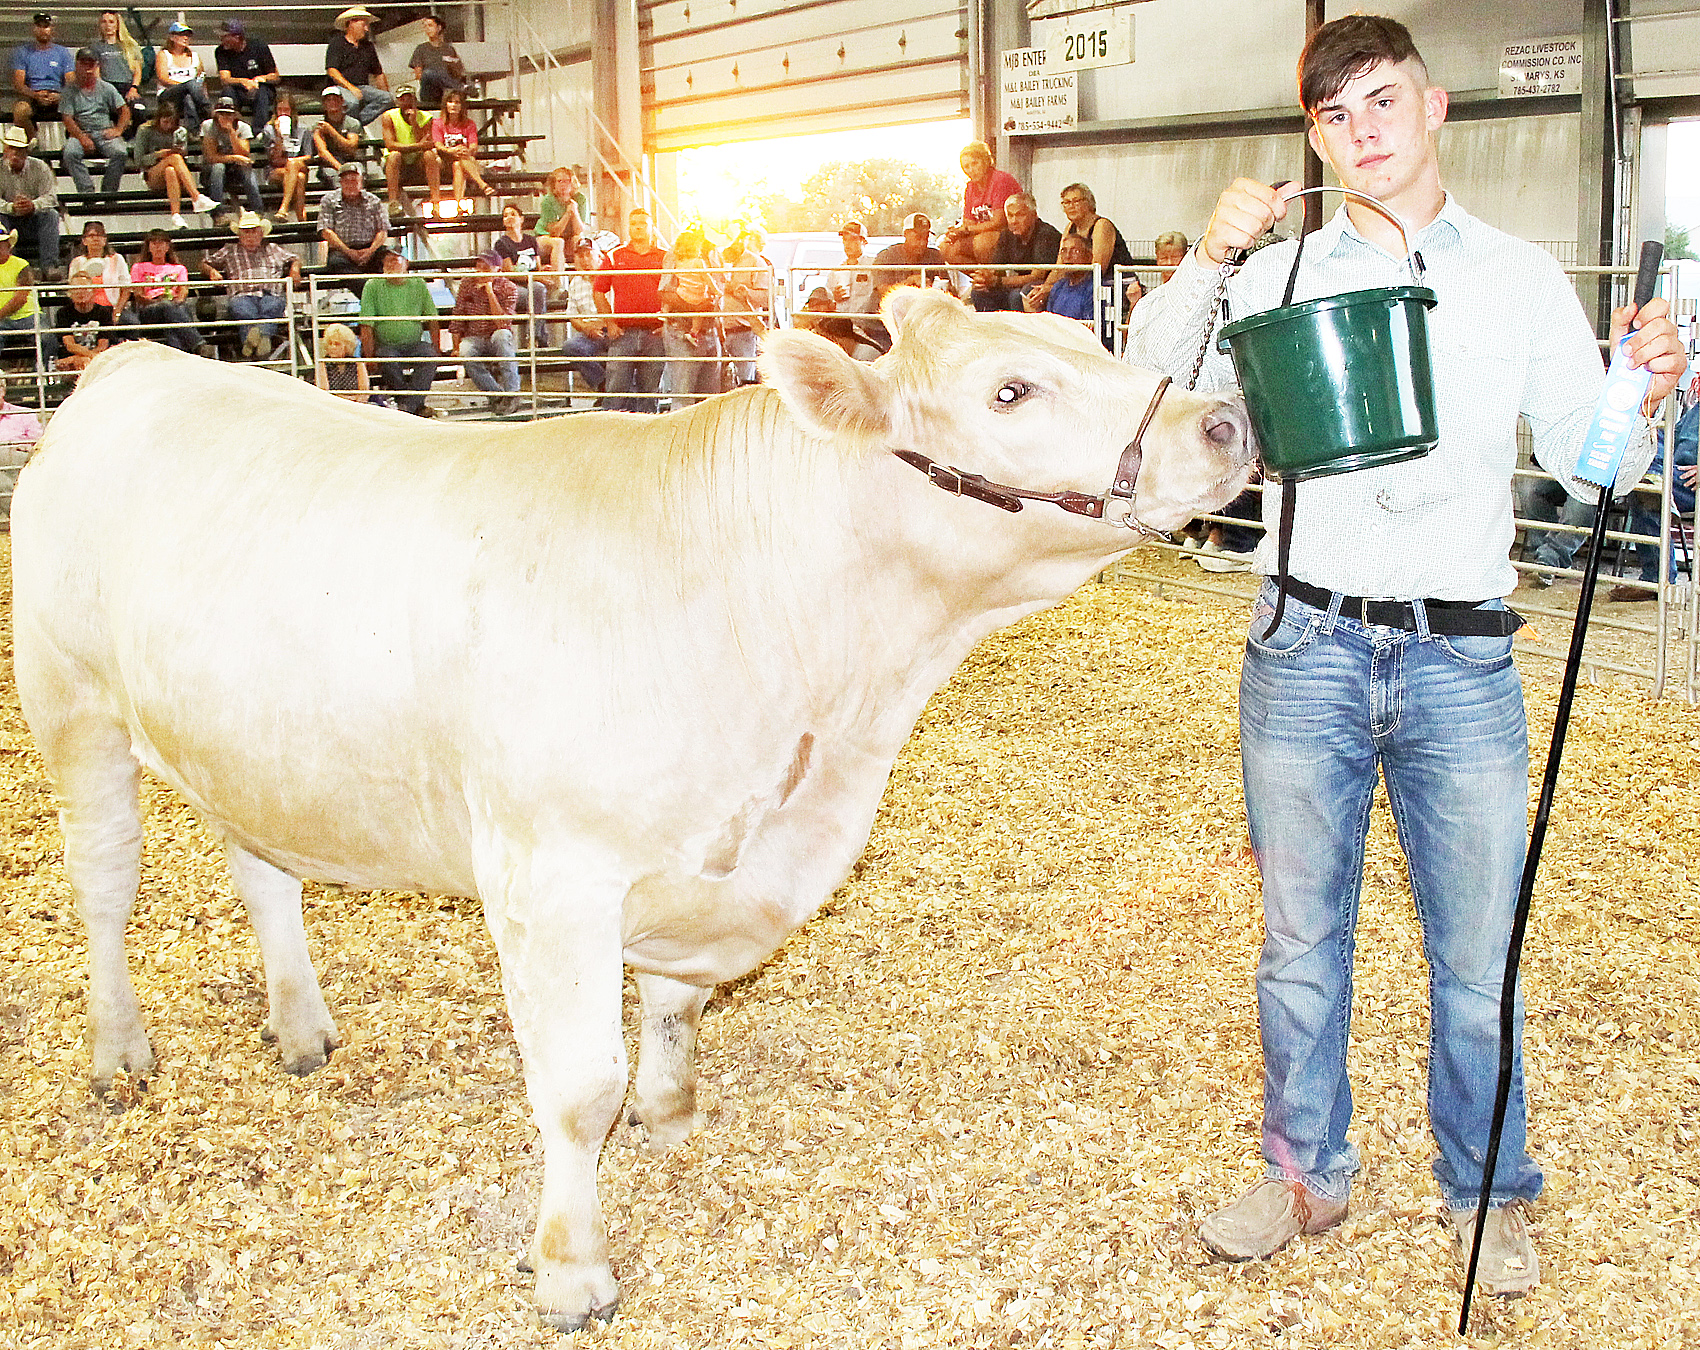 This all-other-breeds market steer, shown by Devin Bloom of the North Jackson Jets, was named reserve steer in its class and was the beef show's rate of gain winner, picking up an average of 3.98 pounds per day between initial weigh-in and the show.